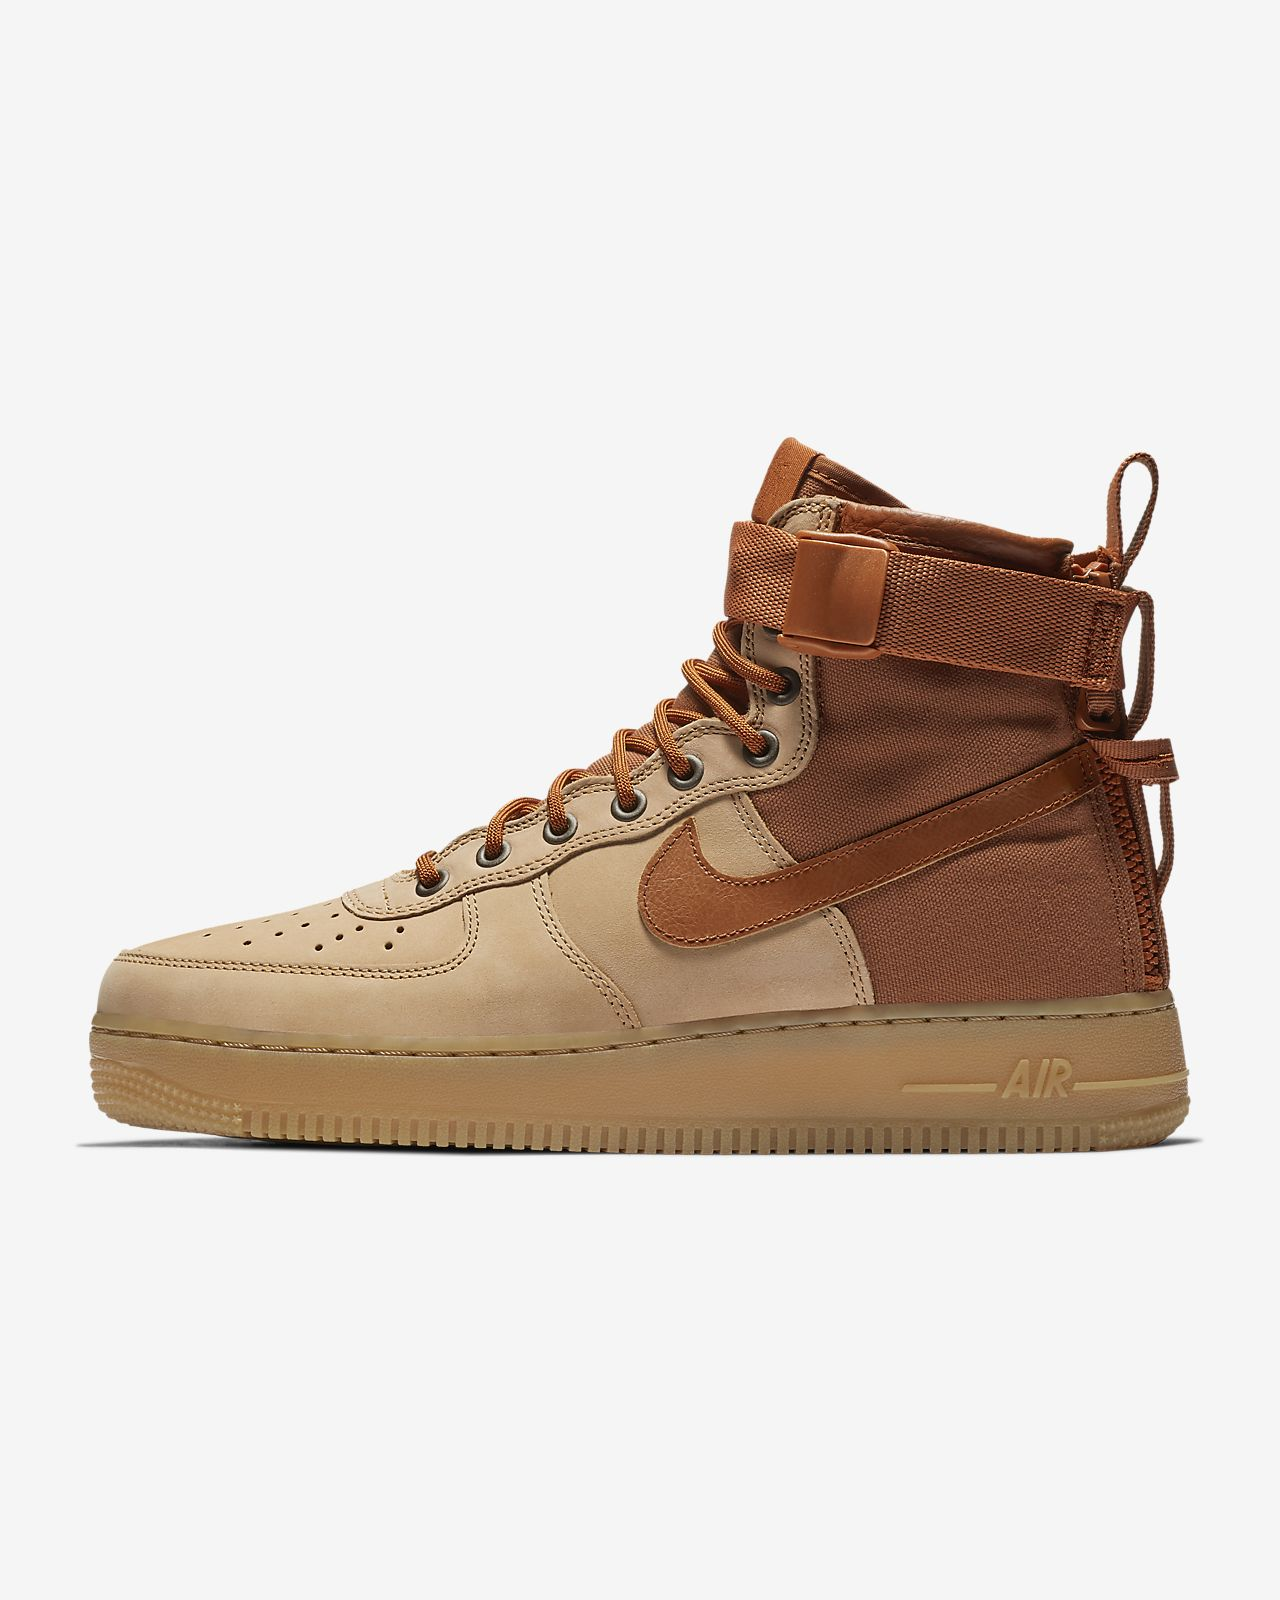 reputable site a4359 64a6f ... Calzado para hombre Nike SF Air Force 1 Mid Premium